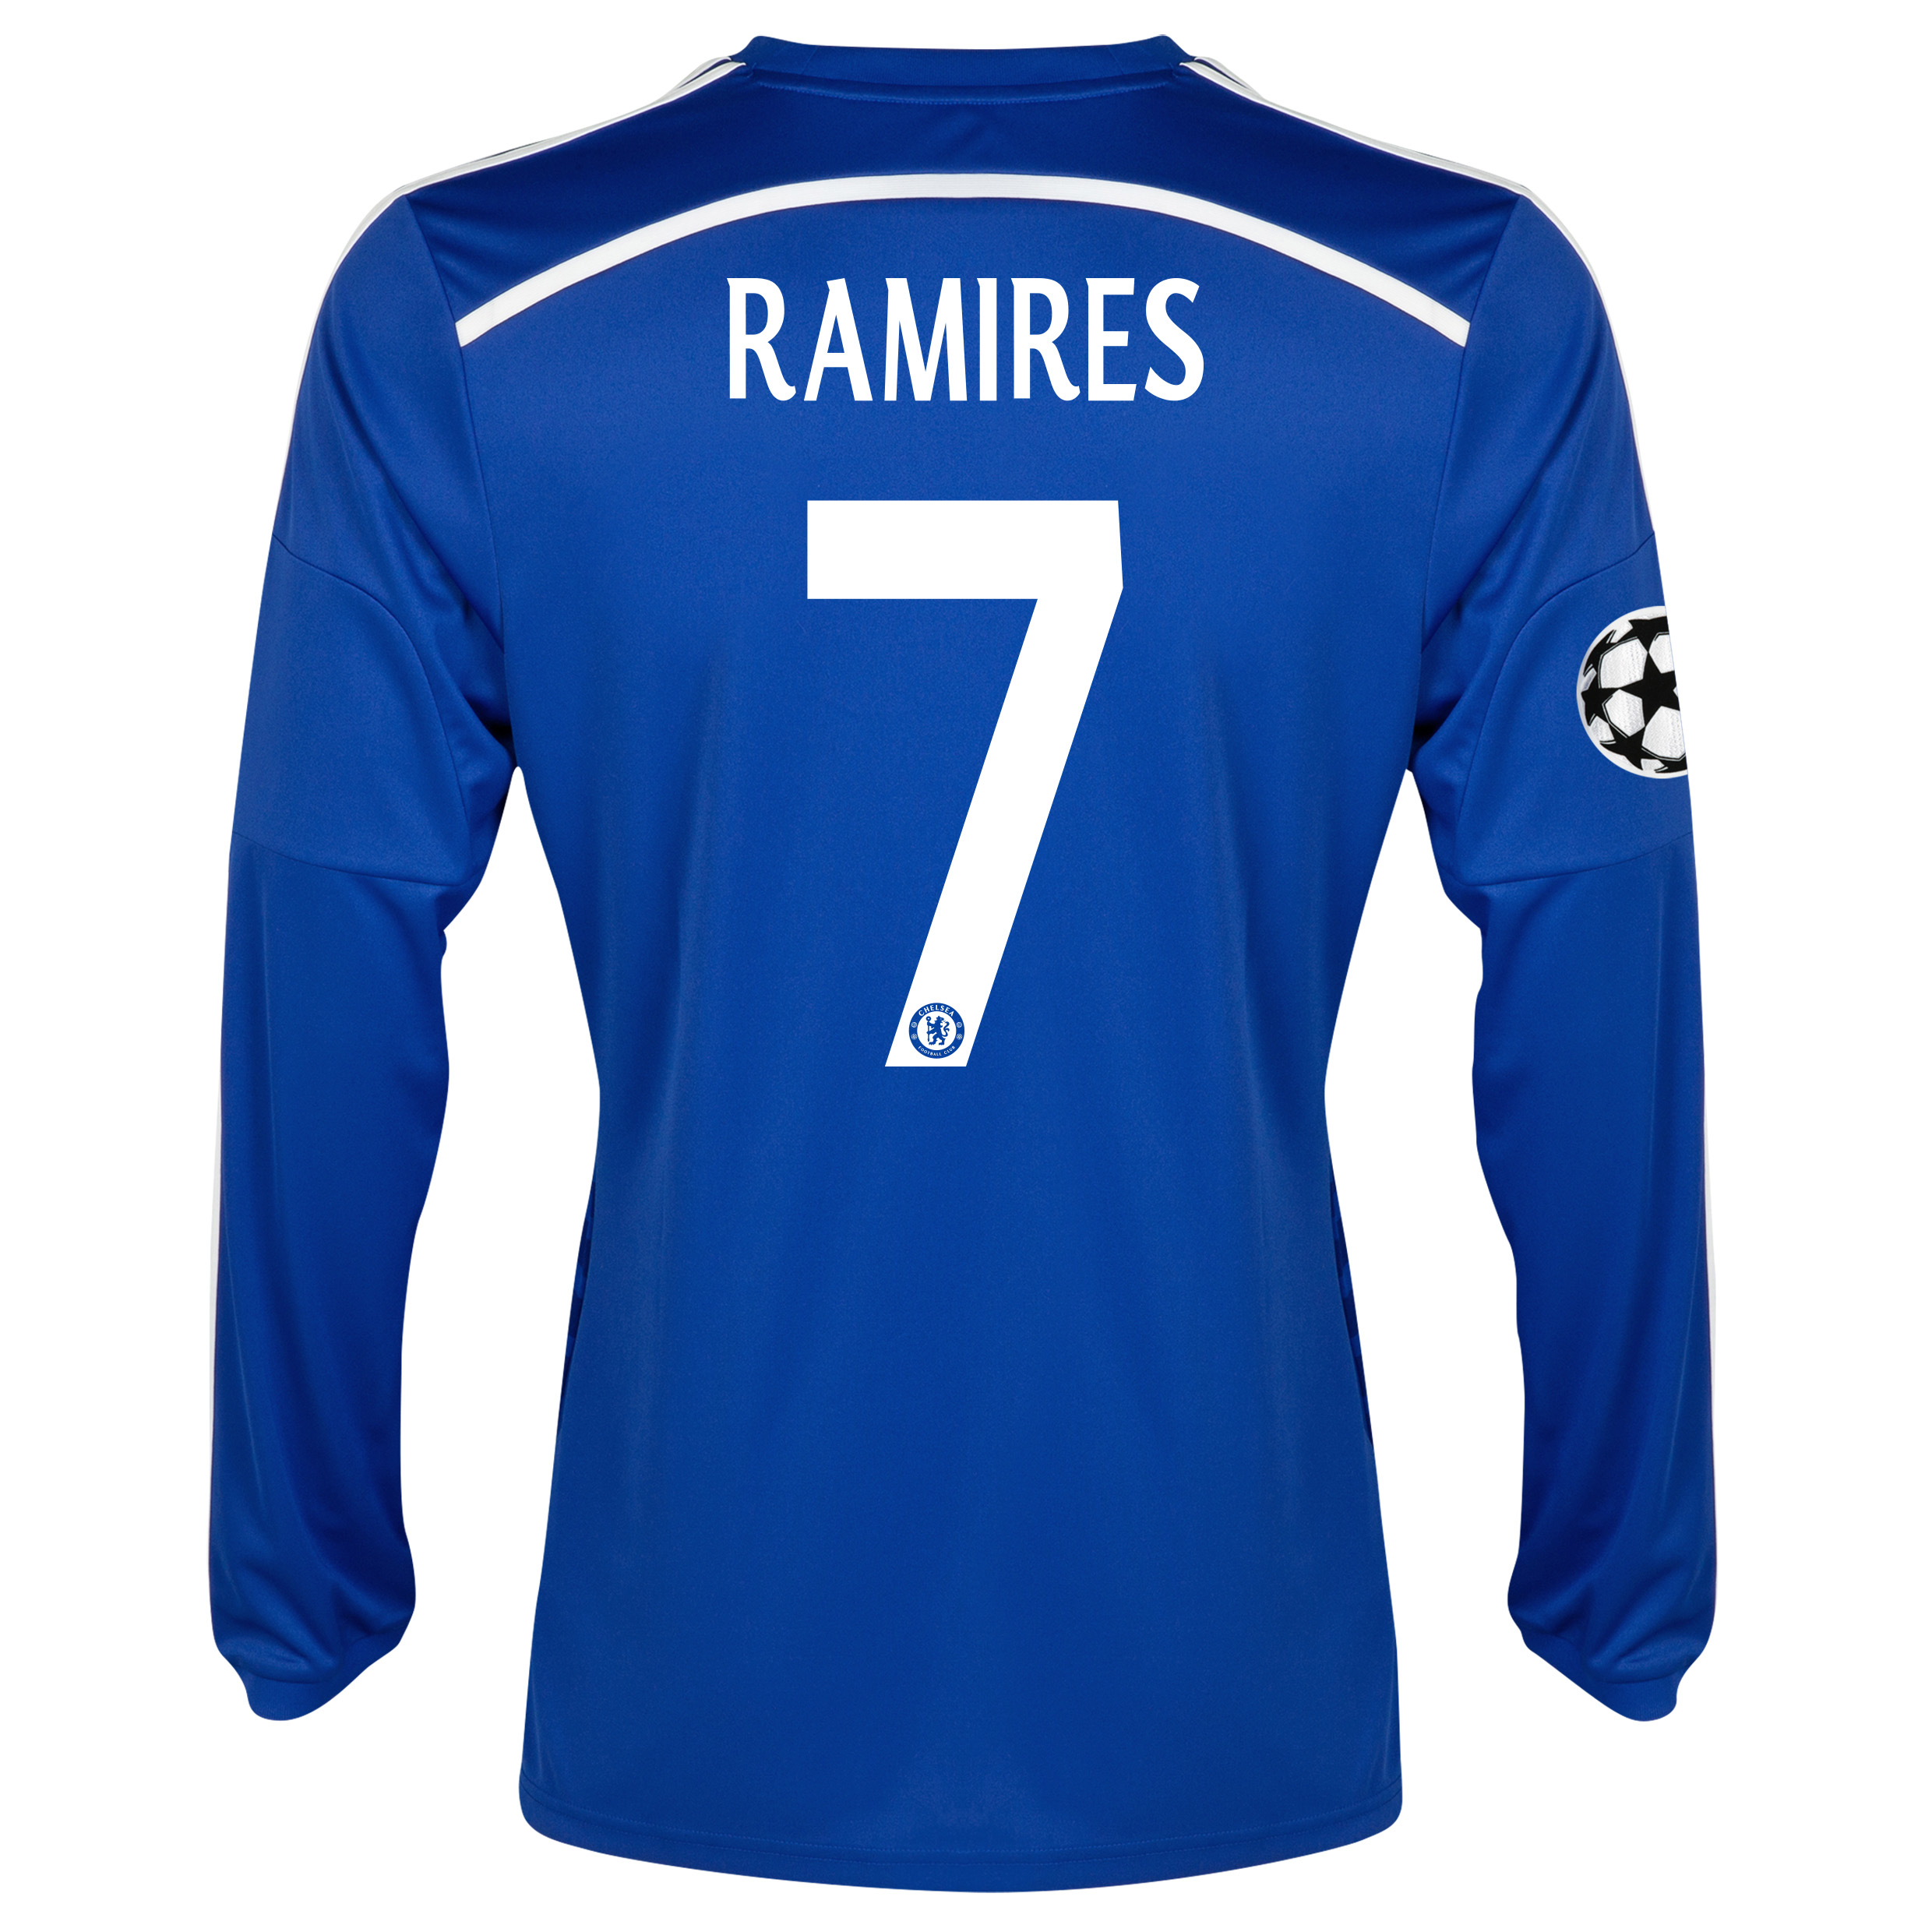 Chelsea UEFA Champions League Home Shirt 2014/15 - Long Sleeve Blue with Ramires 7 printing